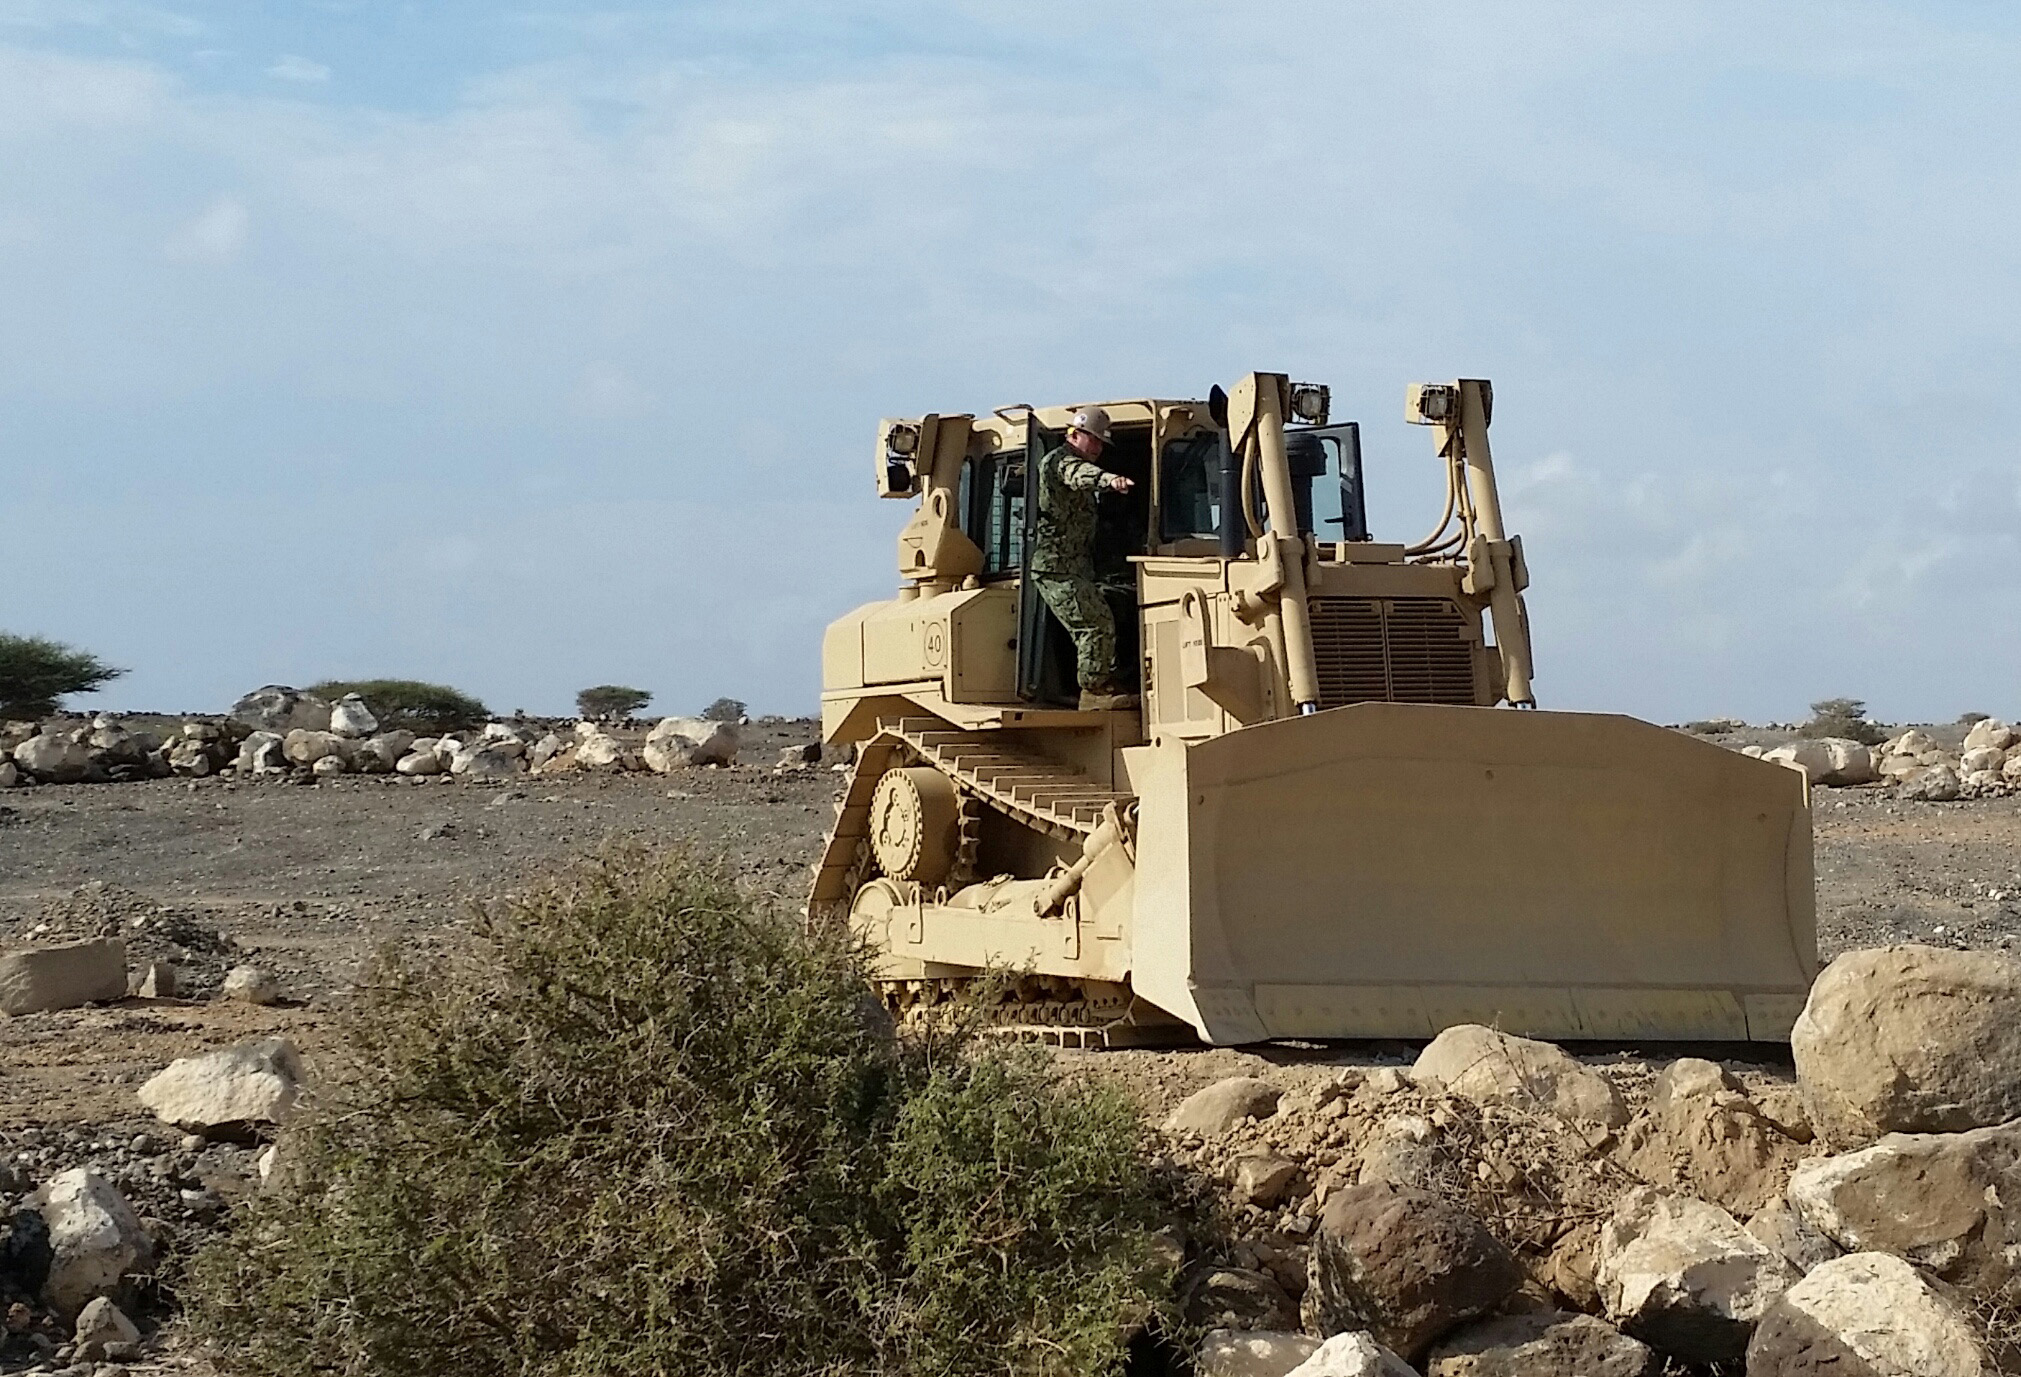 Camp Lemonnier , Djibouti (Mar. 24, 2015) U.S. Navy Petty Officer 1st  Class David Graydon and  U.S Navy Petty Officer 3rd Class Brandon Paul, equipment operators with Naval Mobile Construction Battalion (NMCB) 14  train Djiboutian Army's Construction Engineers on a new D7 Dozer during a U.S. Army-led training evolution. NMCB-14 Detachment HOA is deployed to Camp Lemonnier in support of Combined Joint Task Force–Horn of Africa. (U.S. Navy photo by Petty Officer 1st Class Kevin Haneberg)